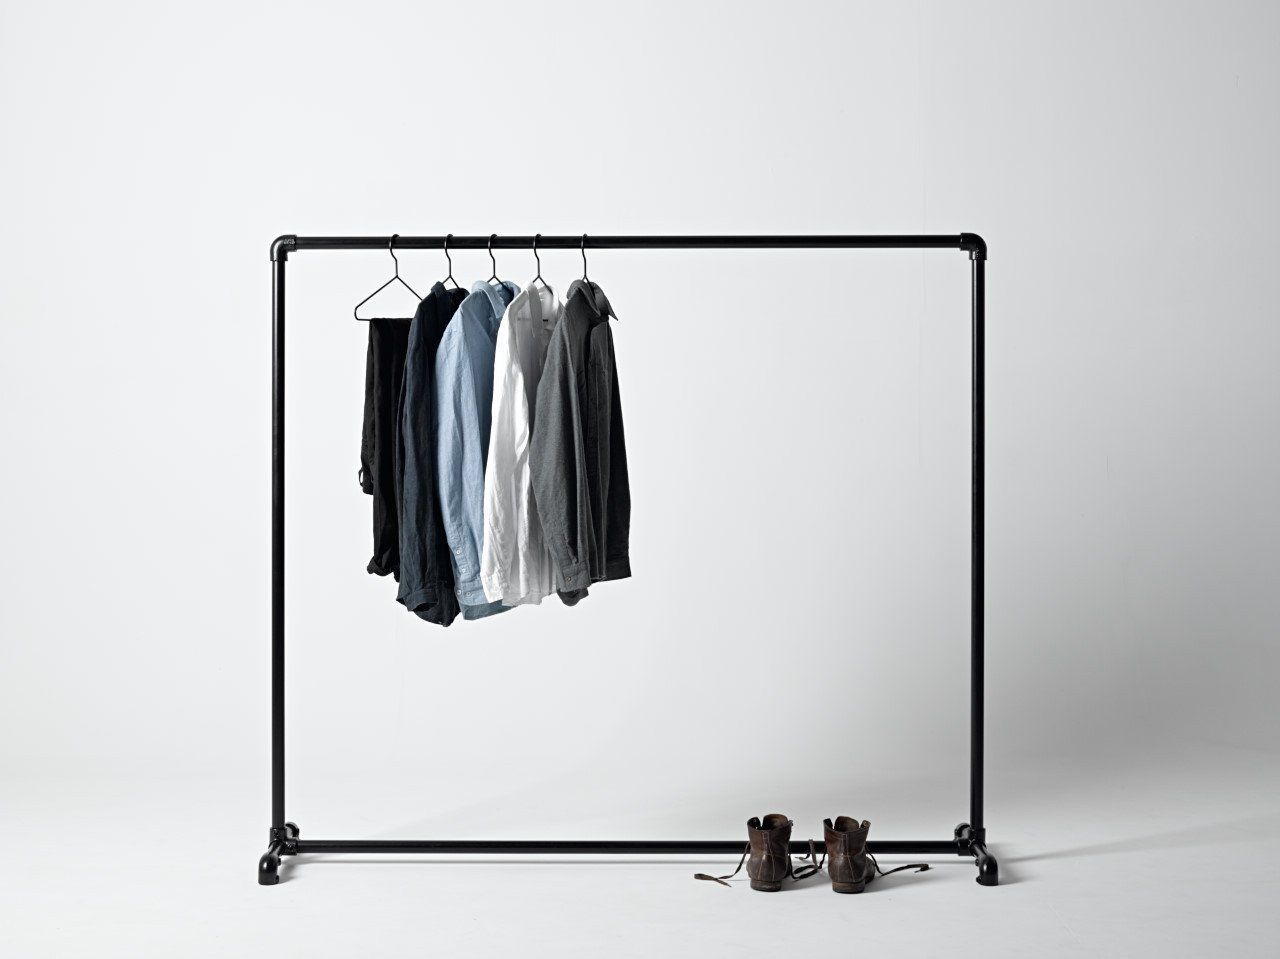 The Commercial Clothing Rack Is A Larger Alternative To Our Popular Industrial Designed